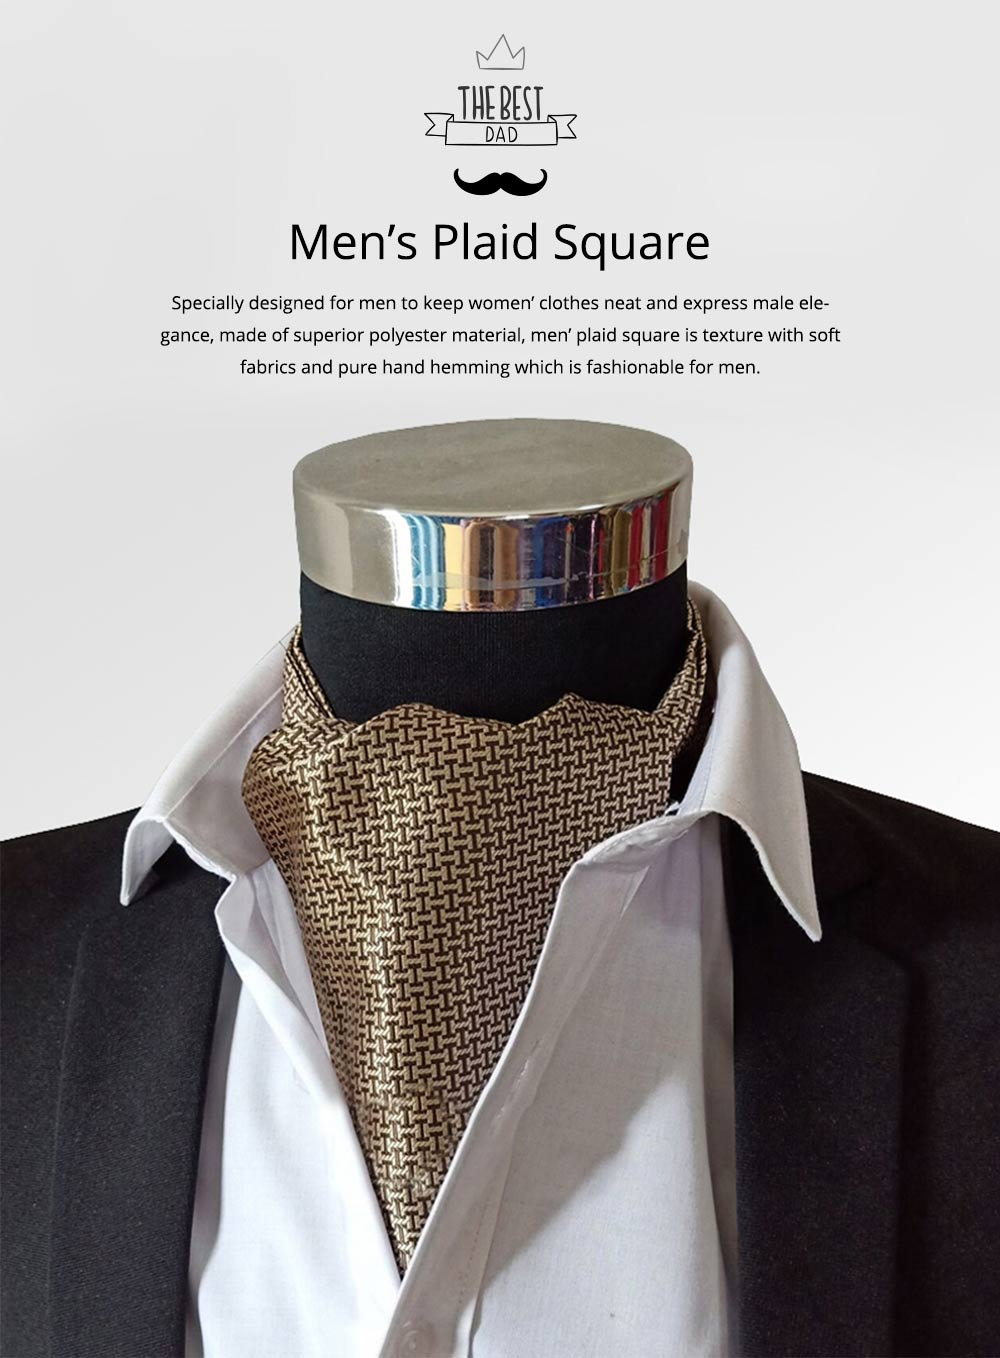 Men's Plaid Square with Pure Hand Hemming, Scarf Collar, Silk Scarves Preventing Bask in A Suit 0